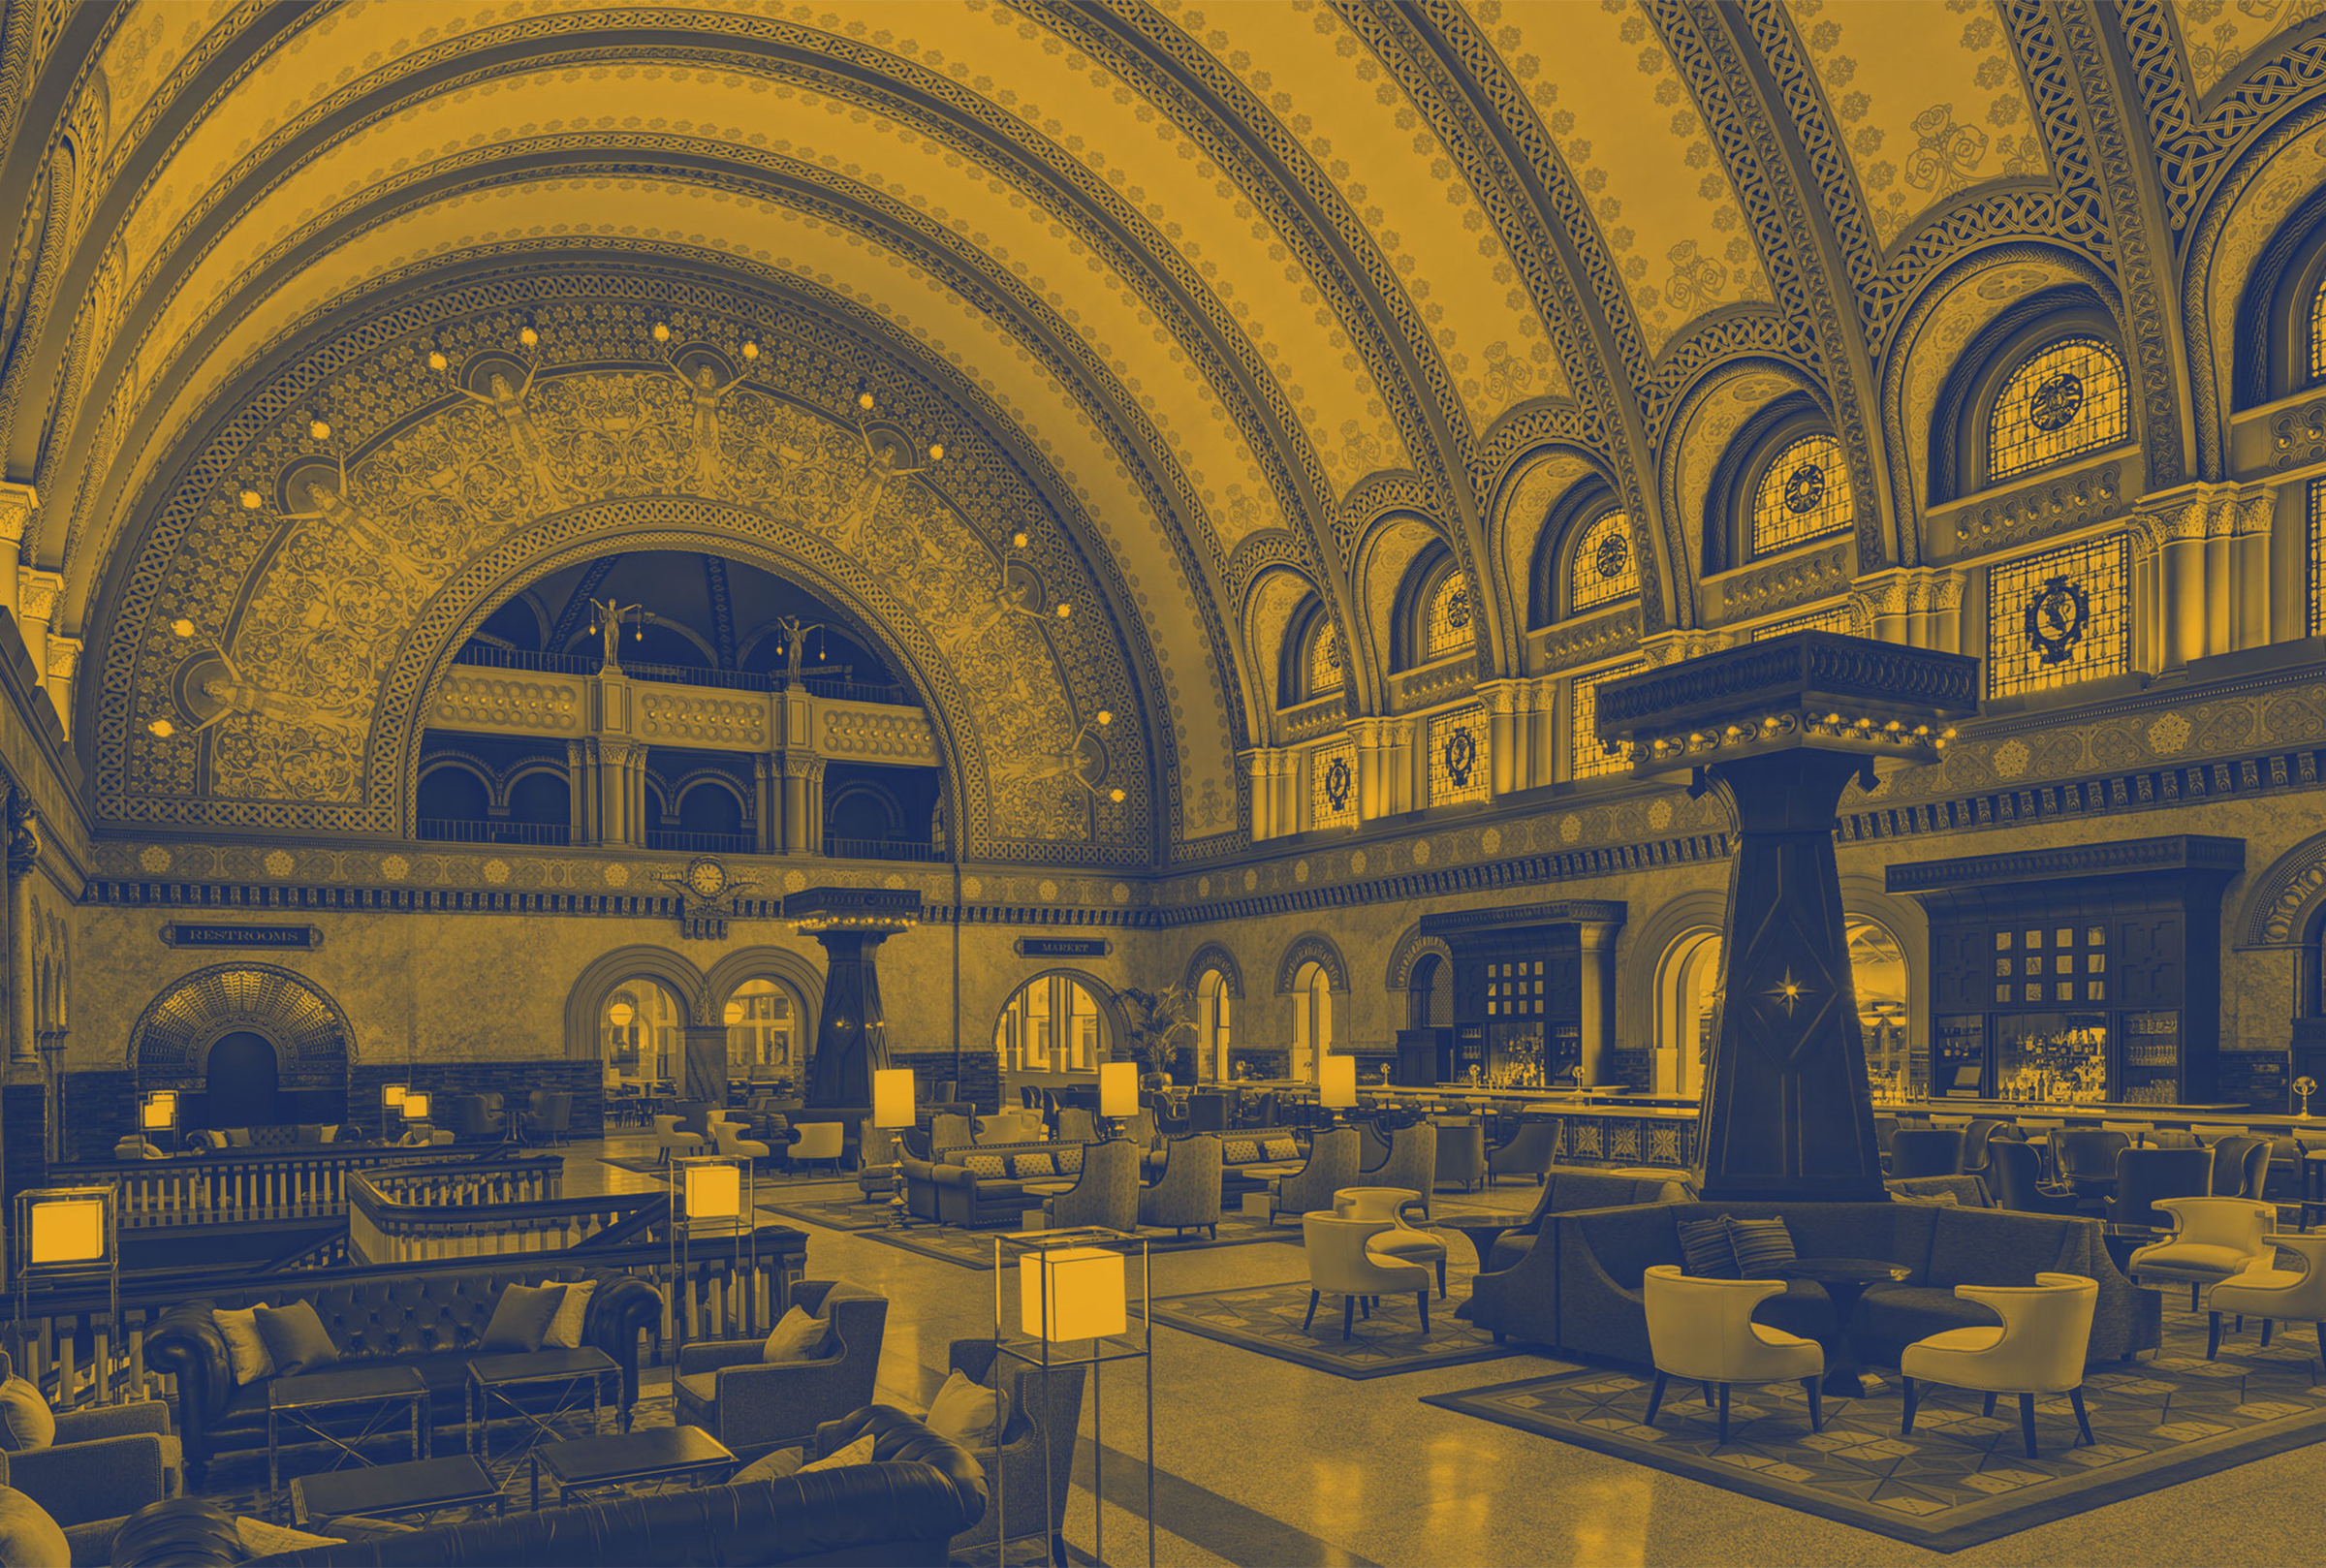 Yellow duotone image of the Grand Hall at Union Station